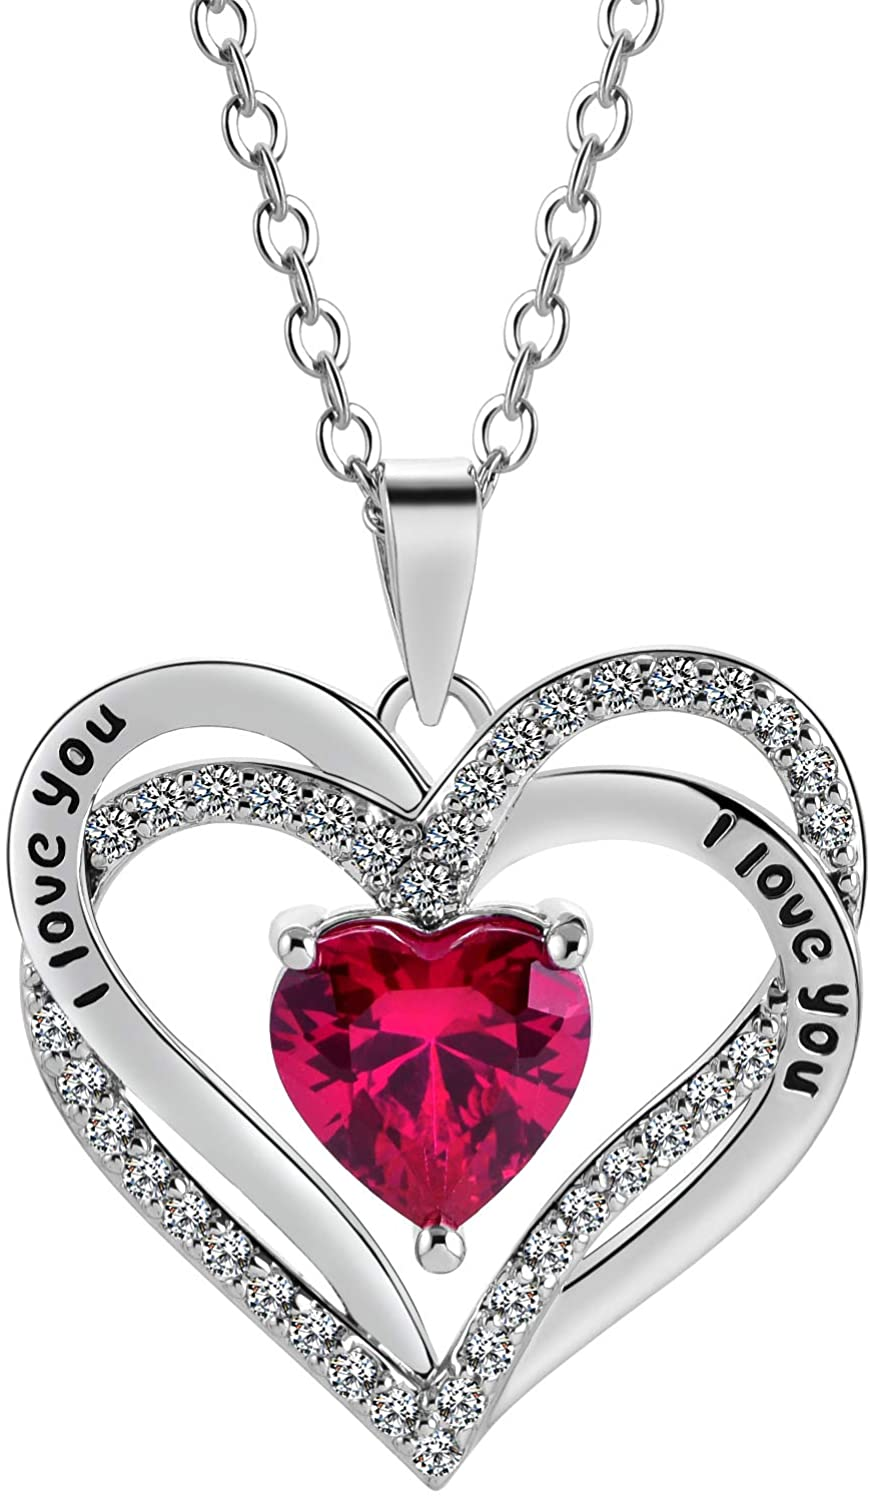 Tian Love Heart Necklace Double-Deck Plated Platinum Lovestone Pendant Necklace for Women with 5A Cubic Zirconia Jewelry